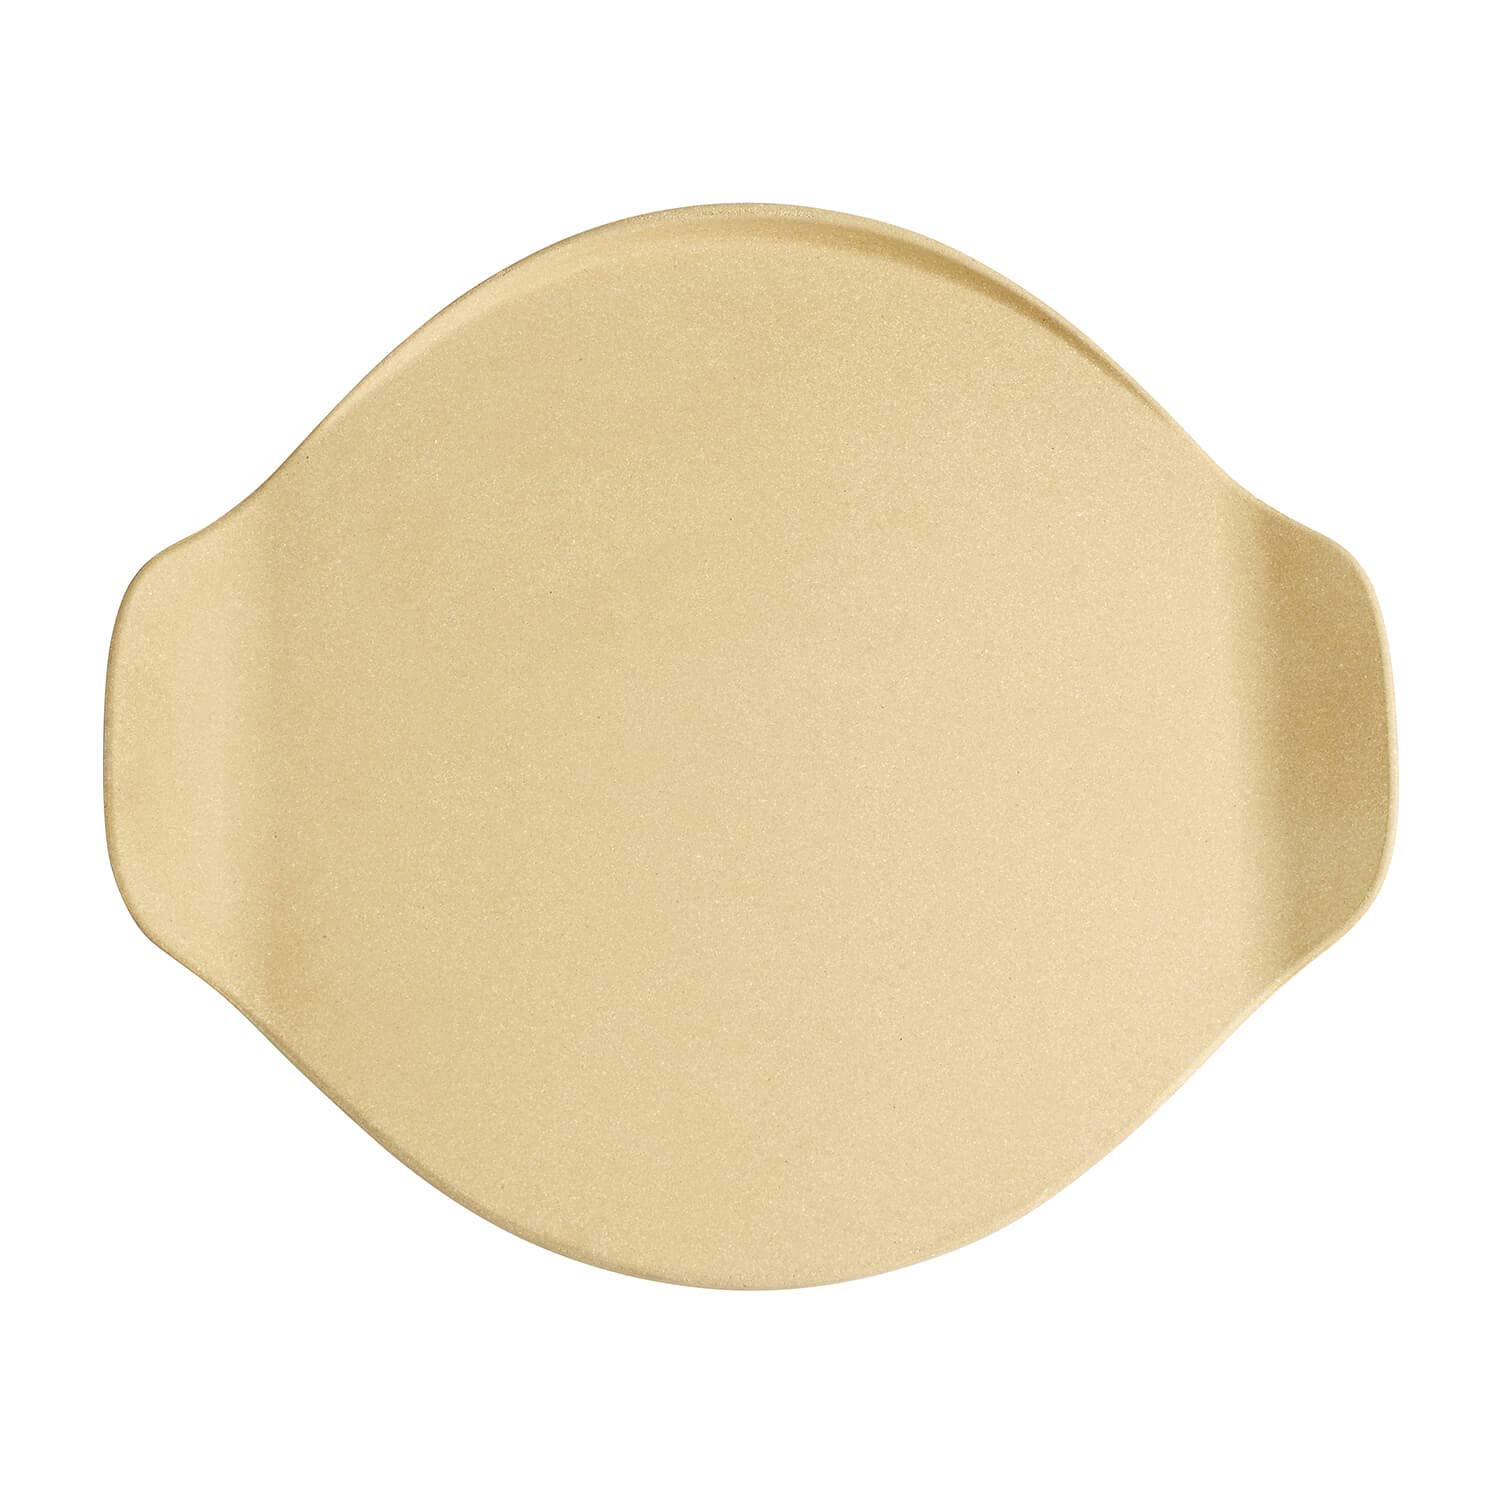 Pizza Passion Pizza Stone by Villeroy & Boch - Premium Cordierite - 15.75 x 13.75 Inches by Villeroy & Boch